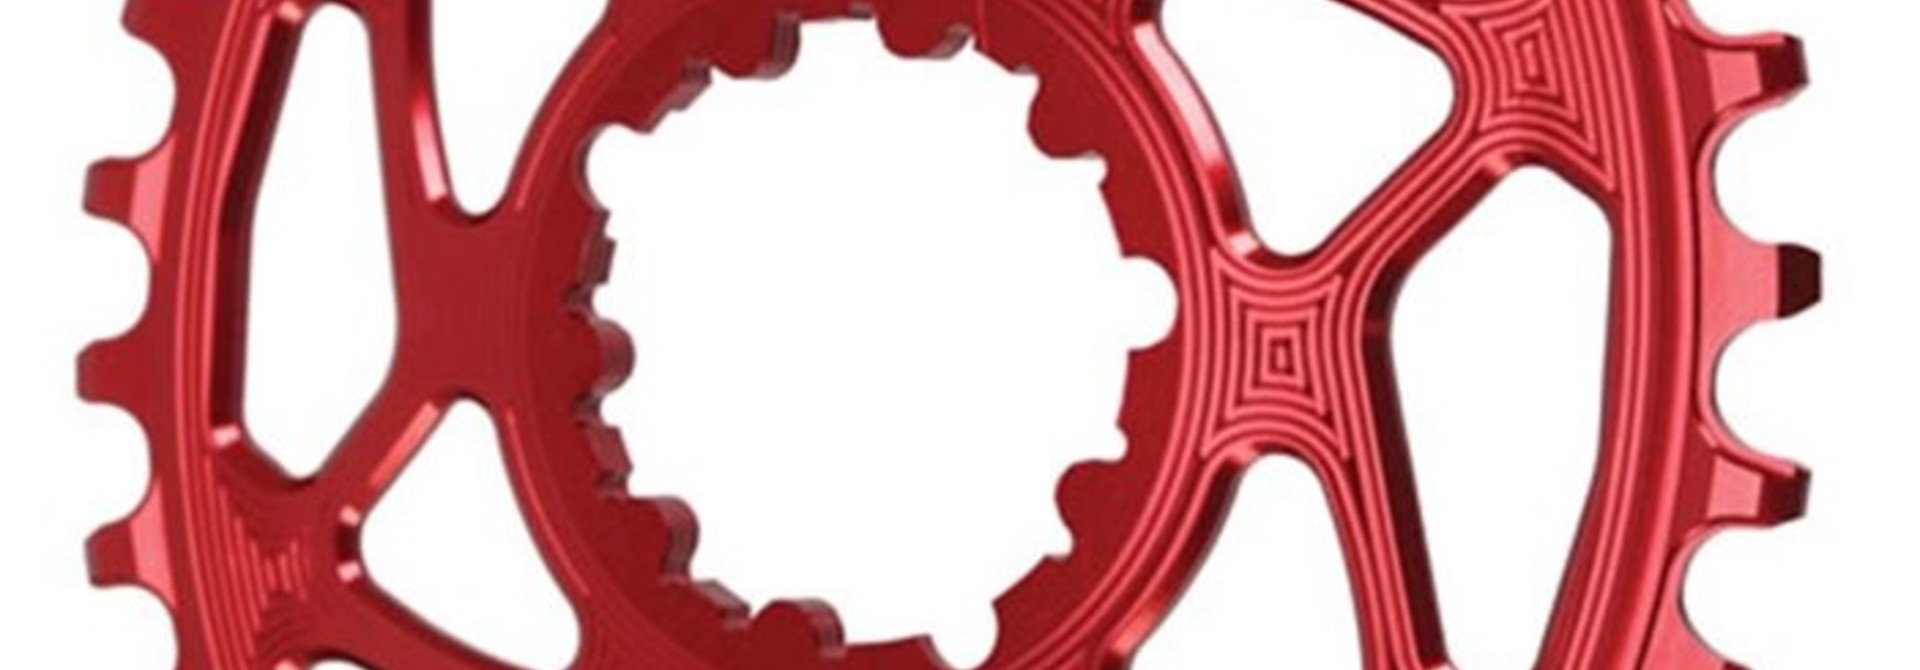 Oval SRAM DM (Boost 3mm Offset) Chainring, 34T - Red